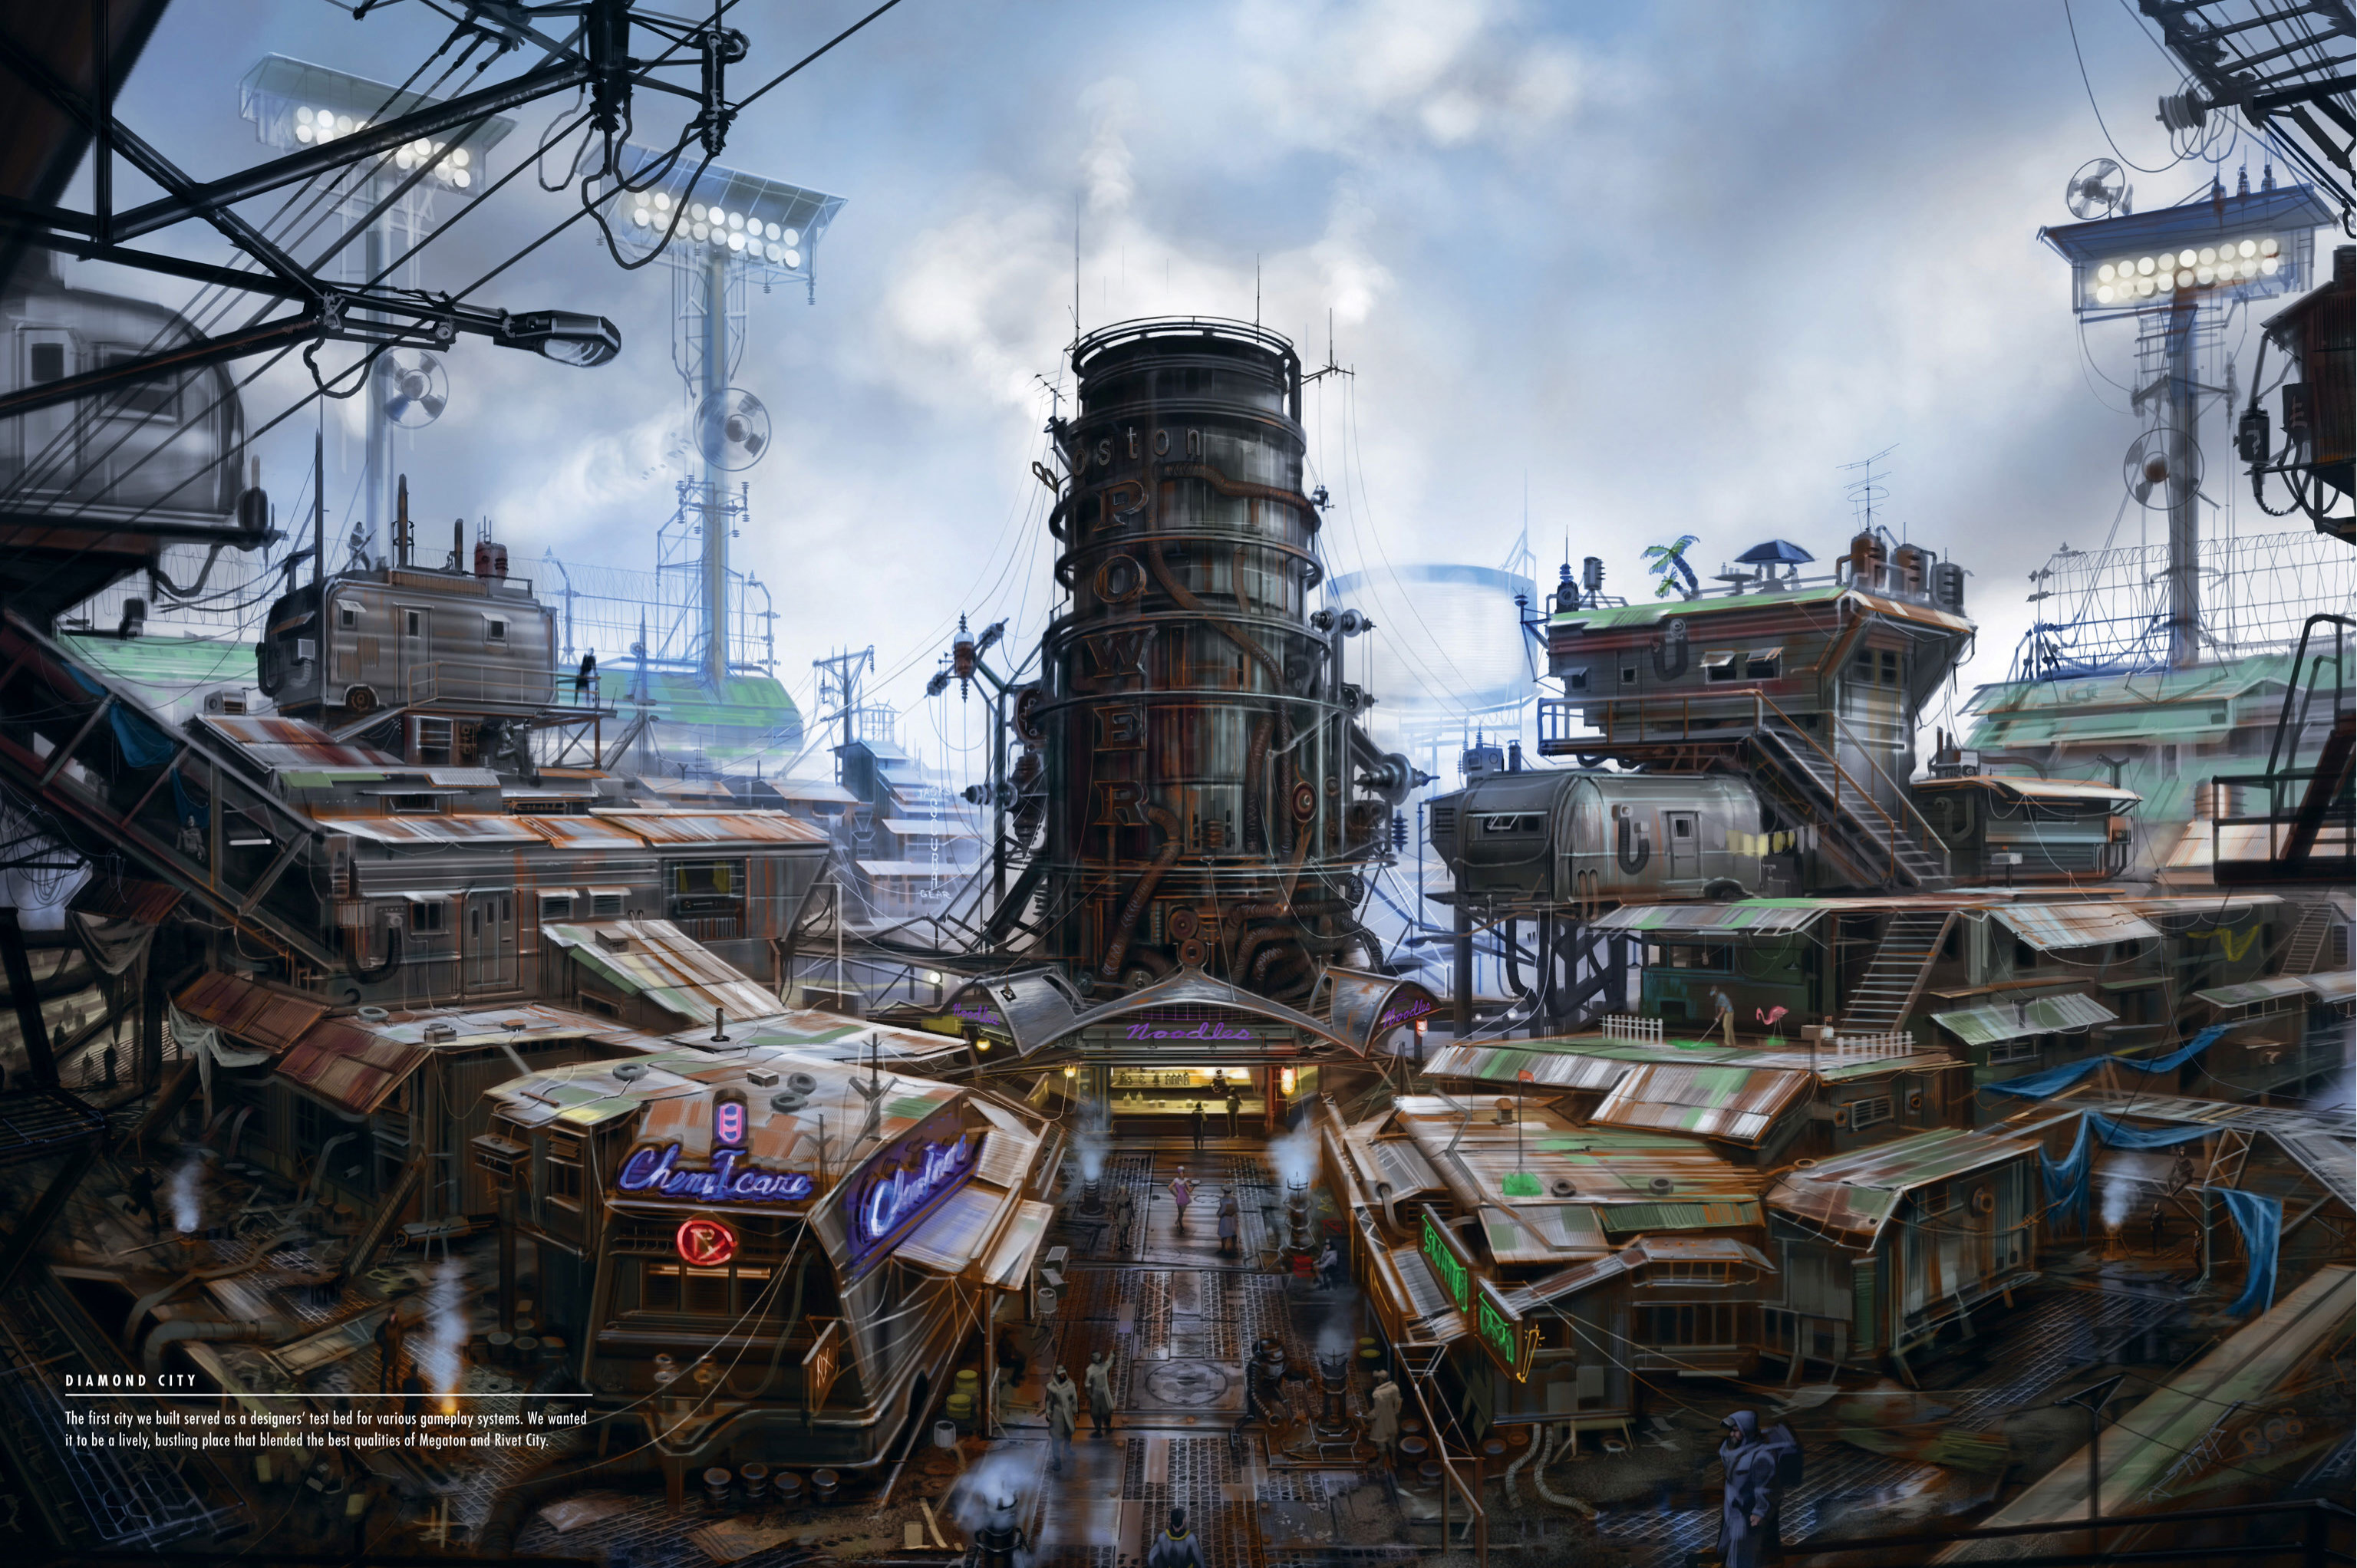 My Favorite Desktop Wallpaper Diamond City Concept Art fo4 3072x2044